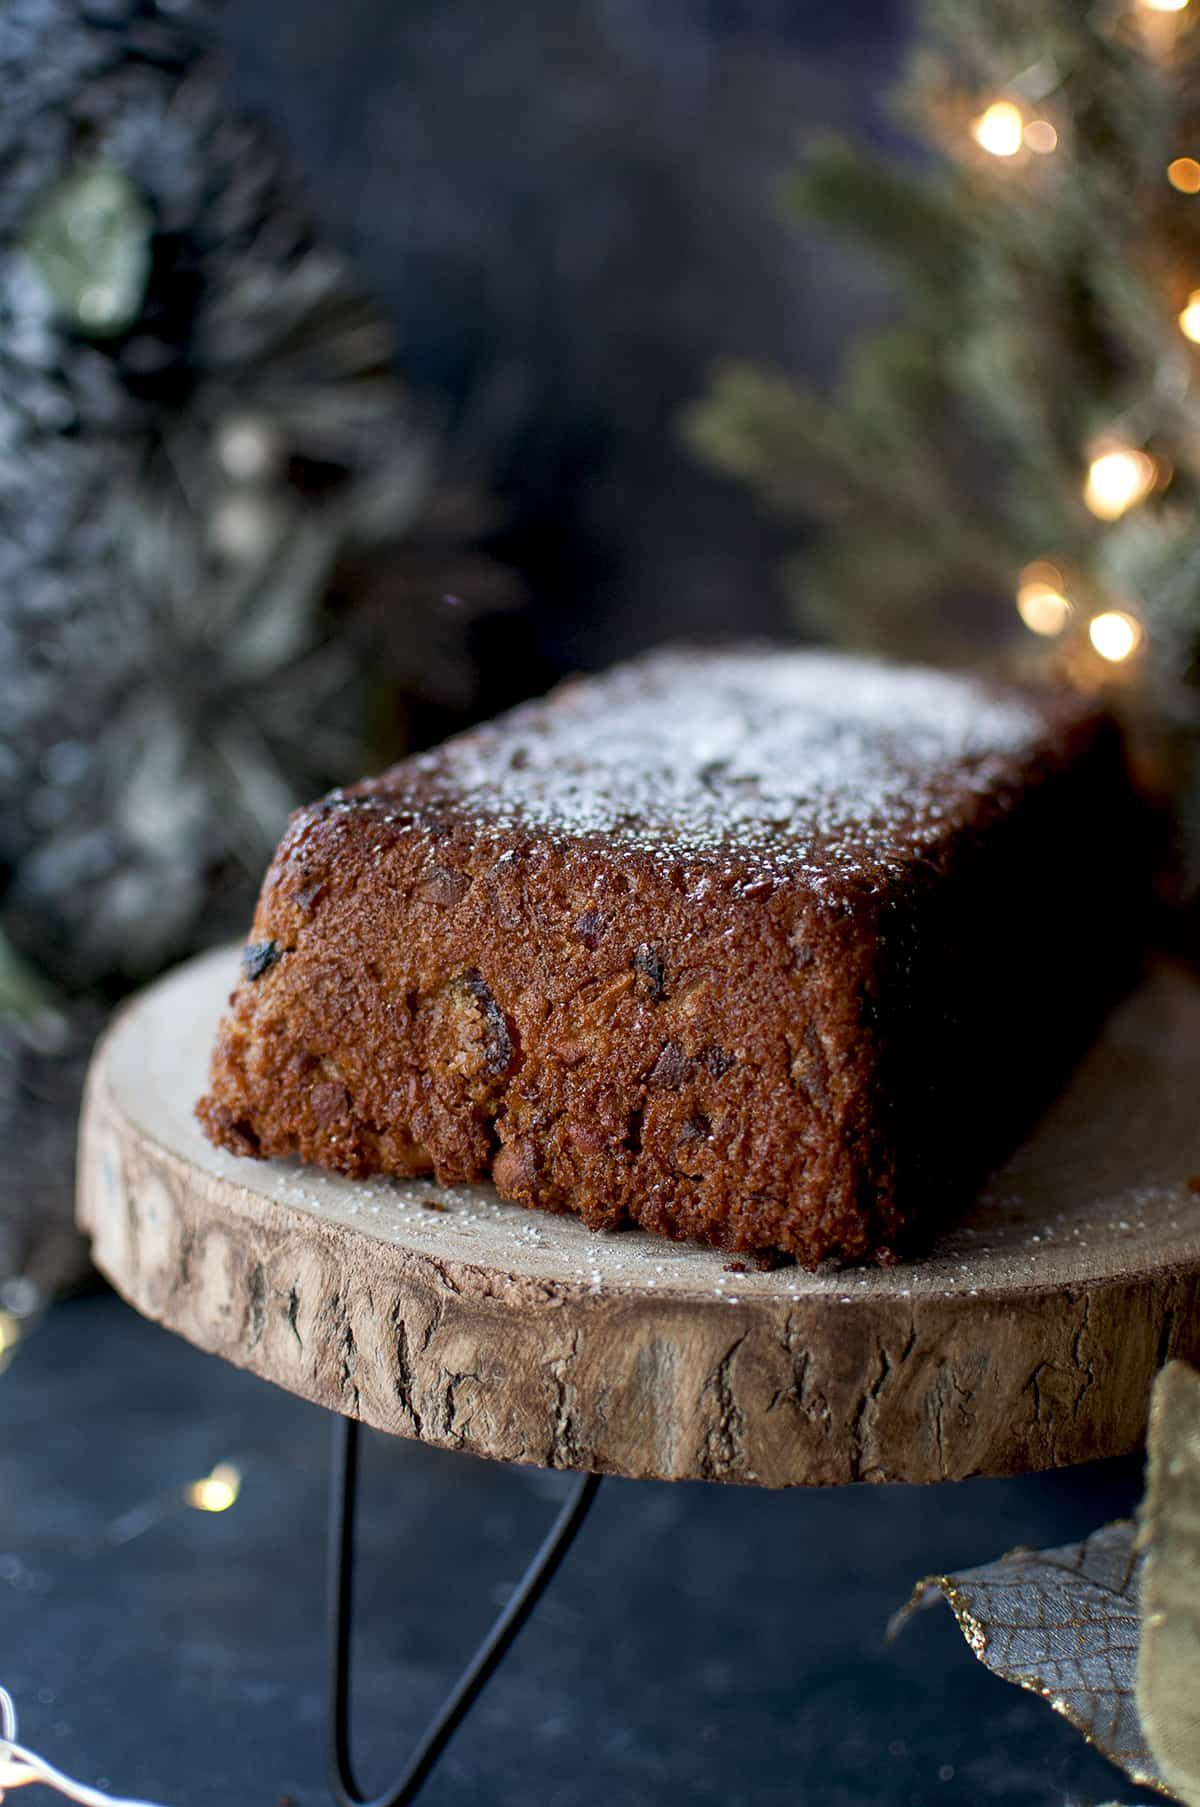 Vegan Fruit cake sprinkled with powdered sugar on a wooden stand